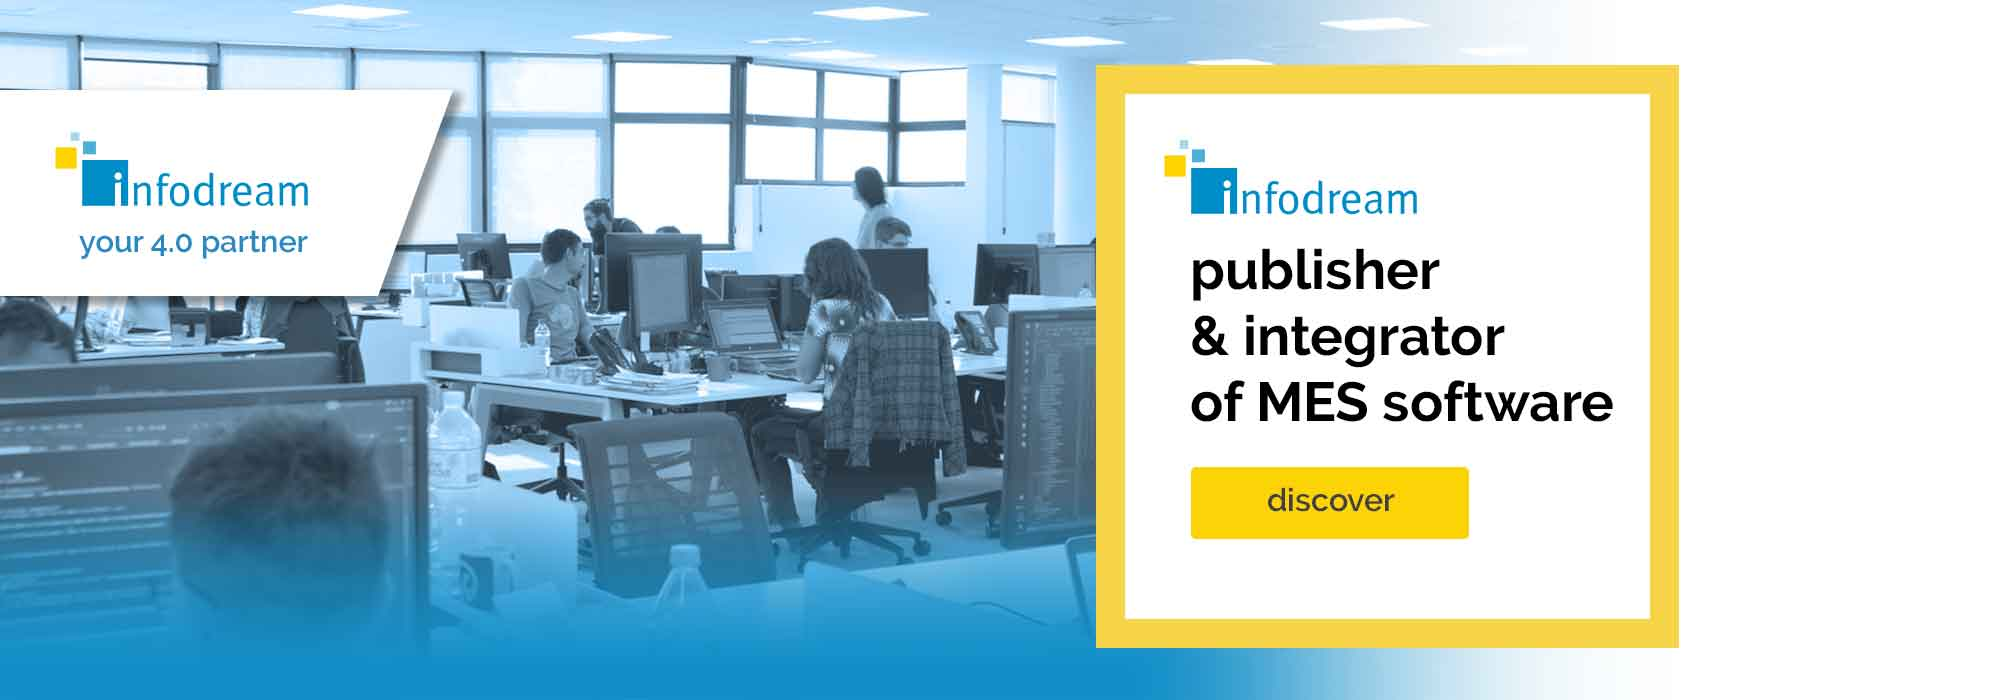 Infodream is a publisher and integrator of MES software.